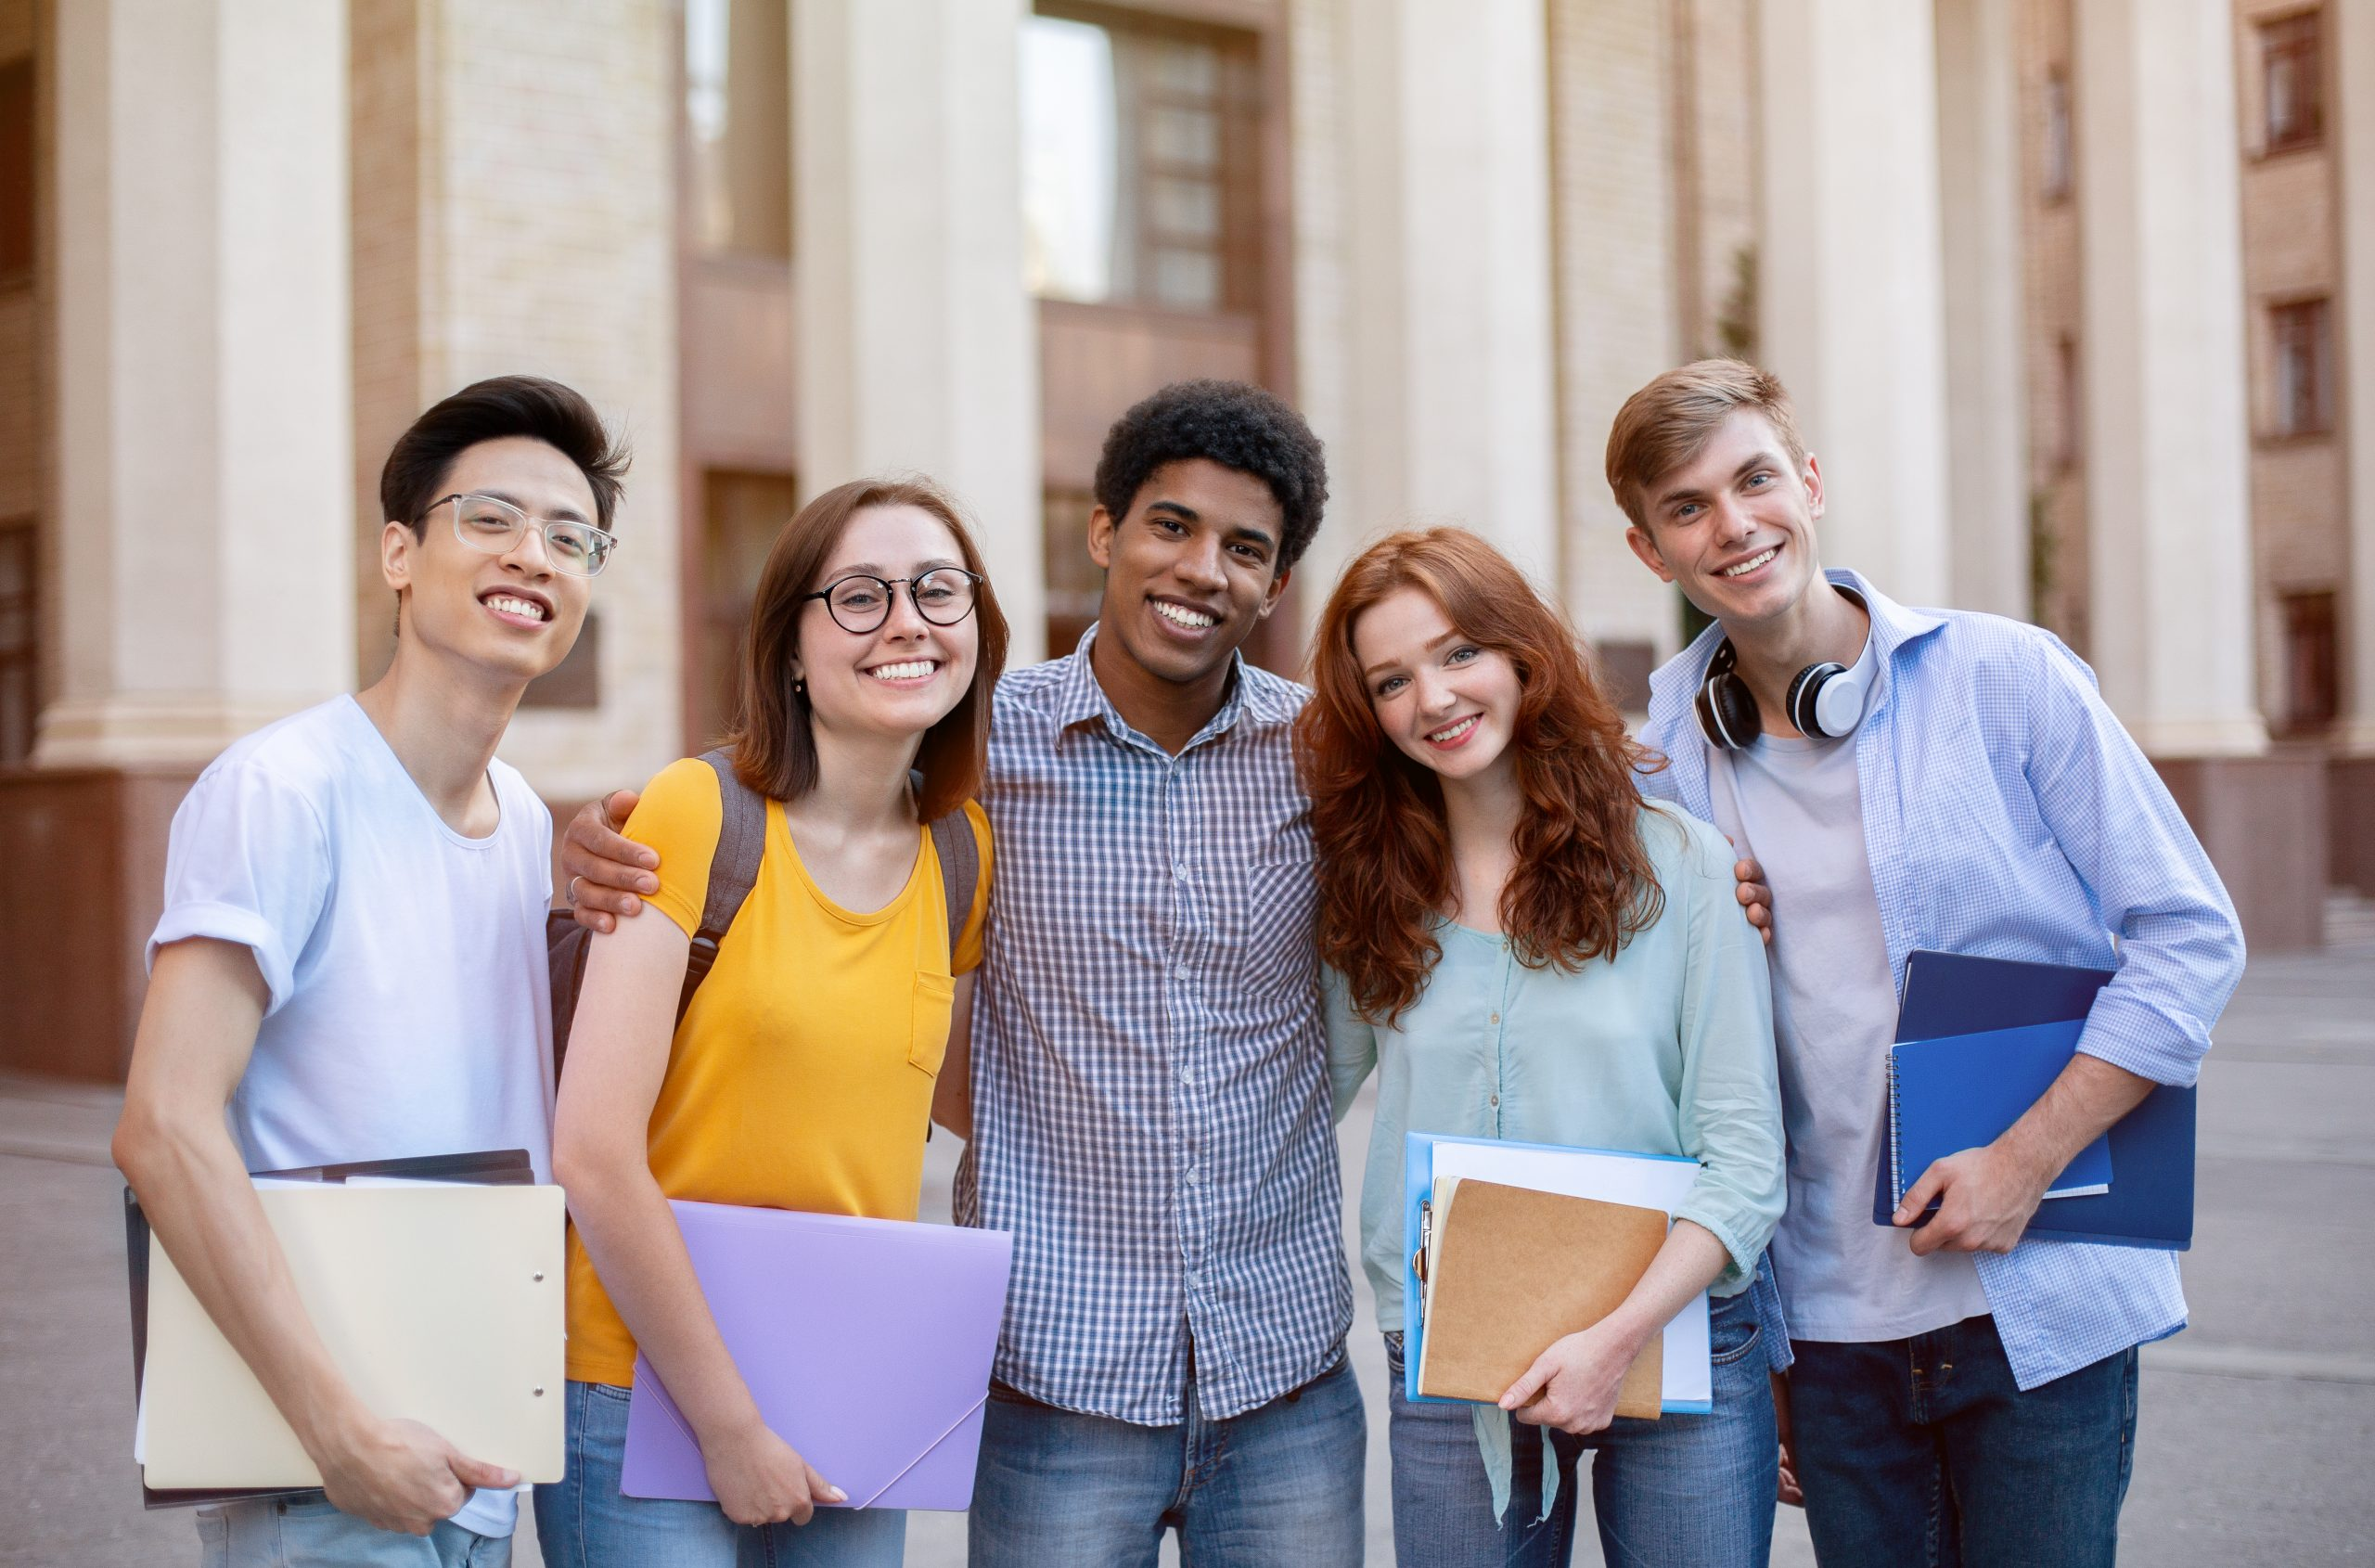 Happy Diverse Students Standing Together Near University Building Outdoors